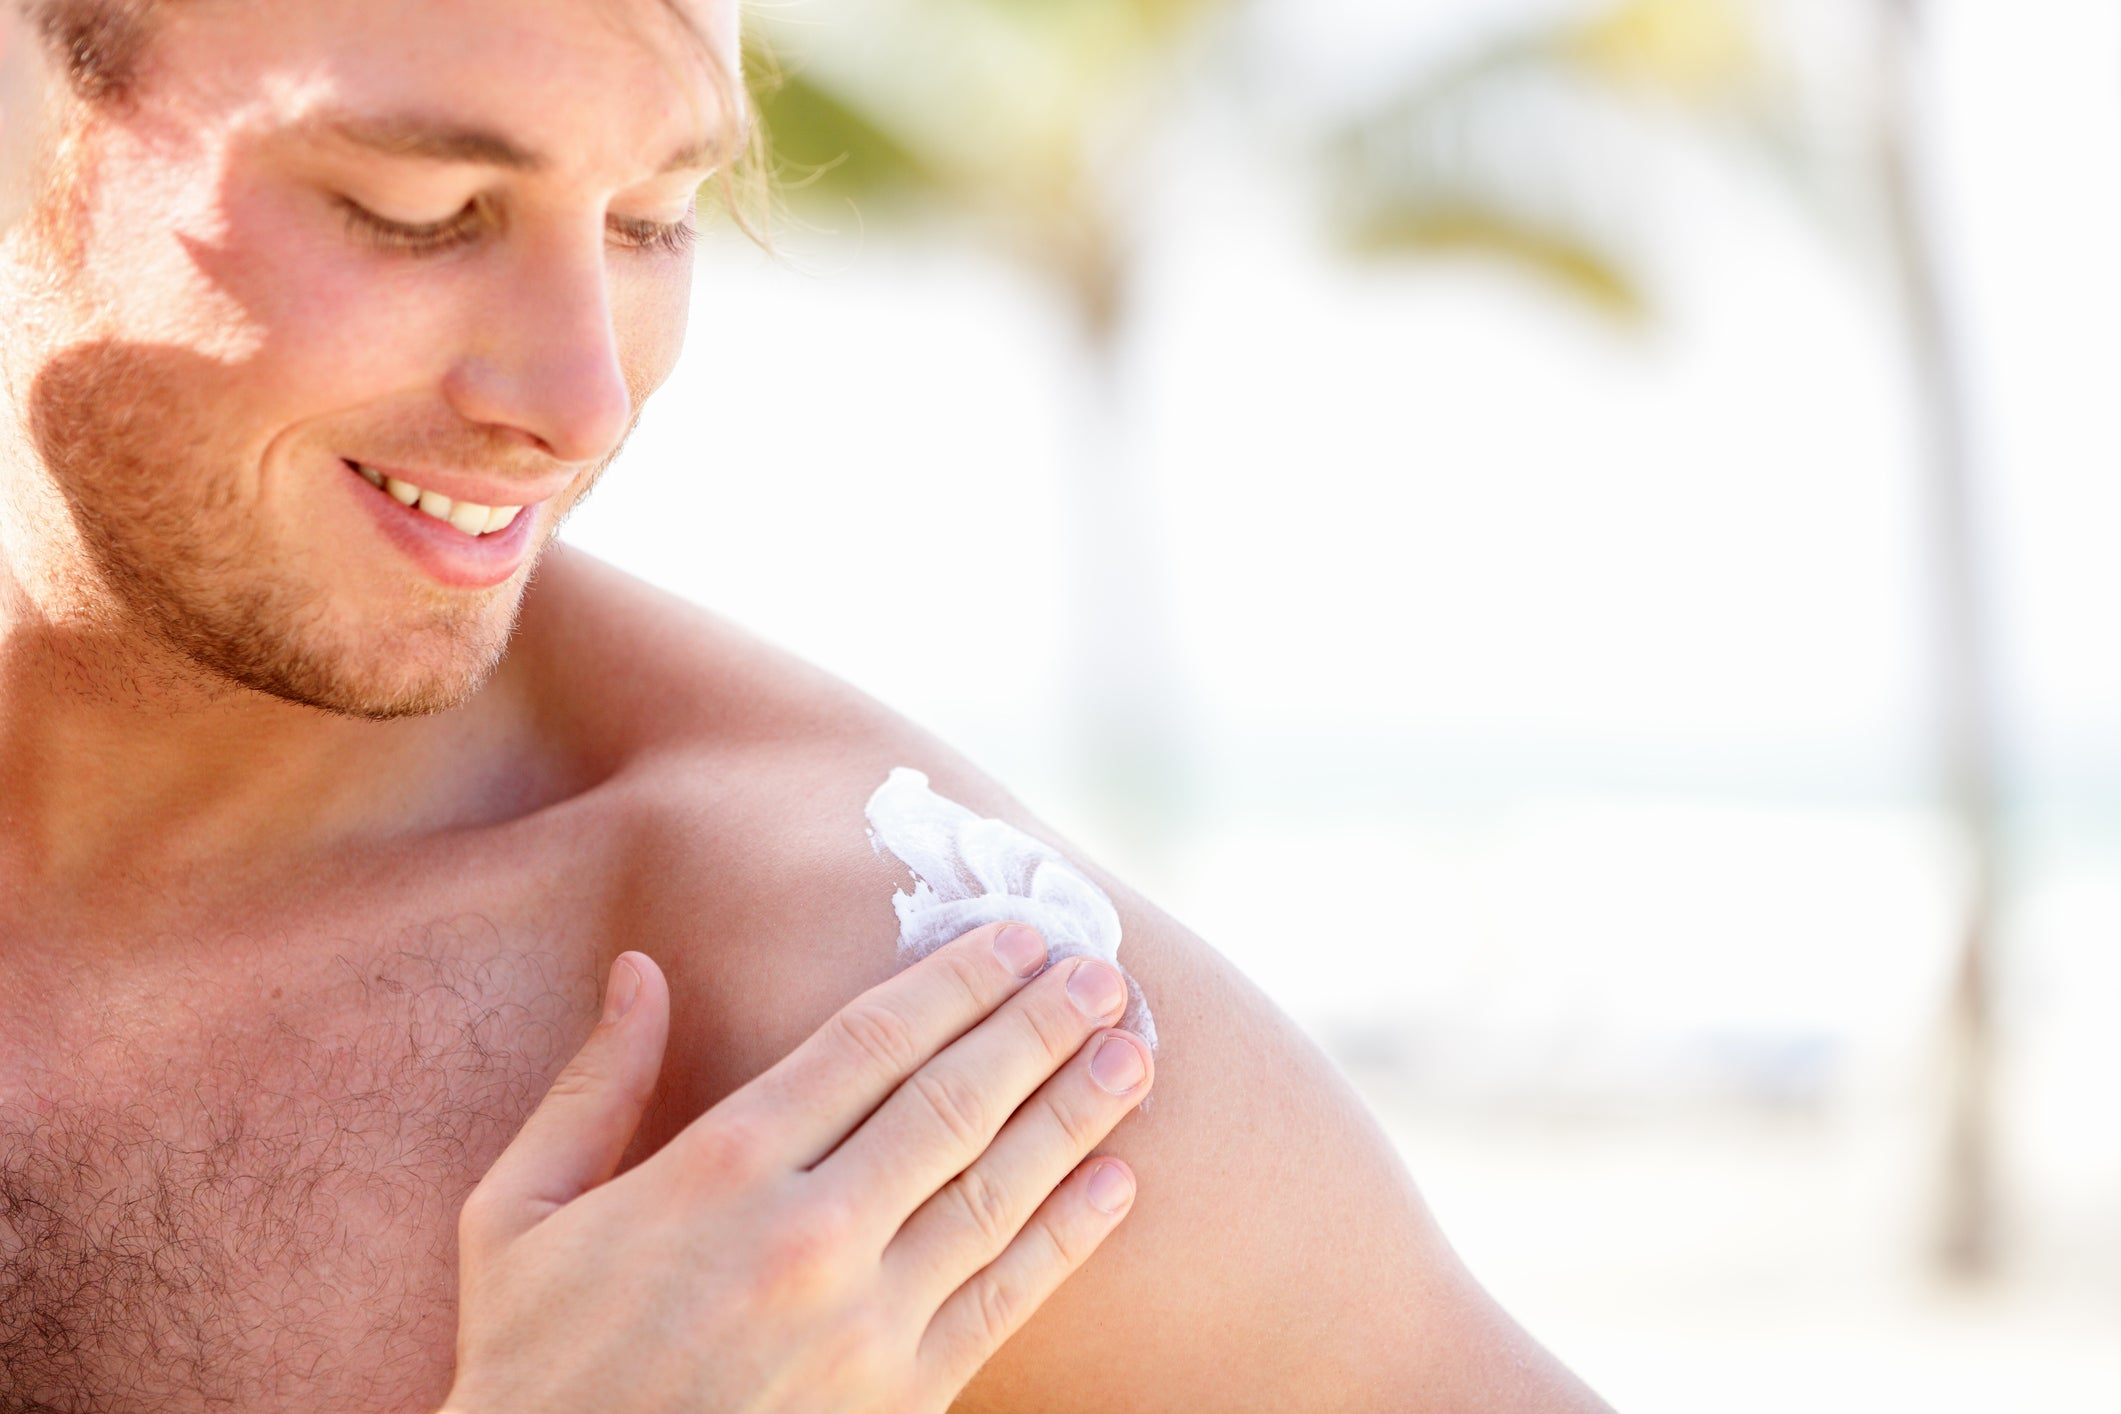 Protect the skin from sunburn